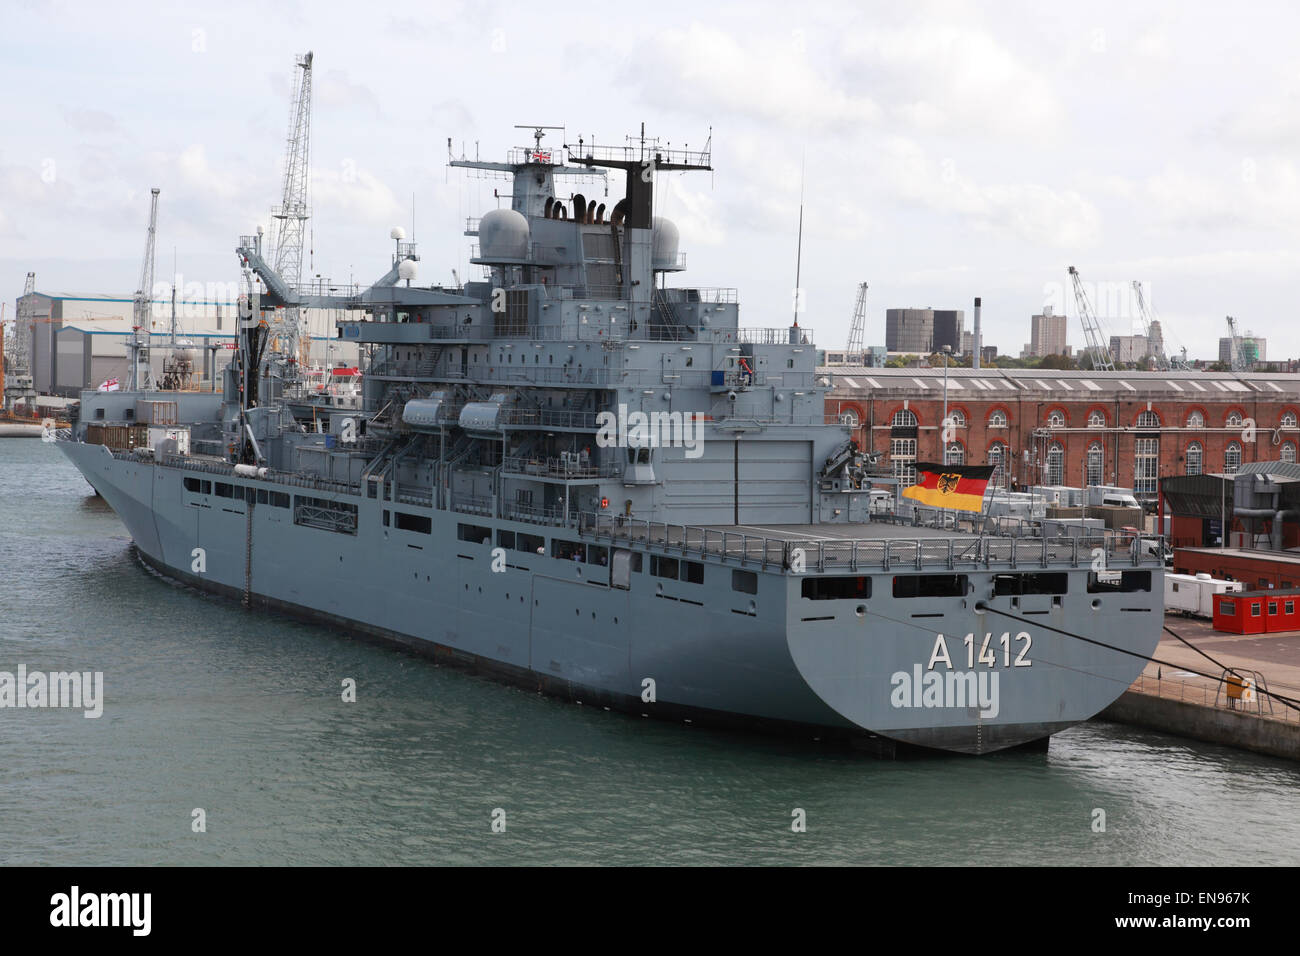 A 1412 Type 702 Berlin class replenishment ship of the German navy in Portsmouth harbour, Hampshire, England, UK - Stock Image